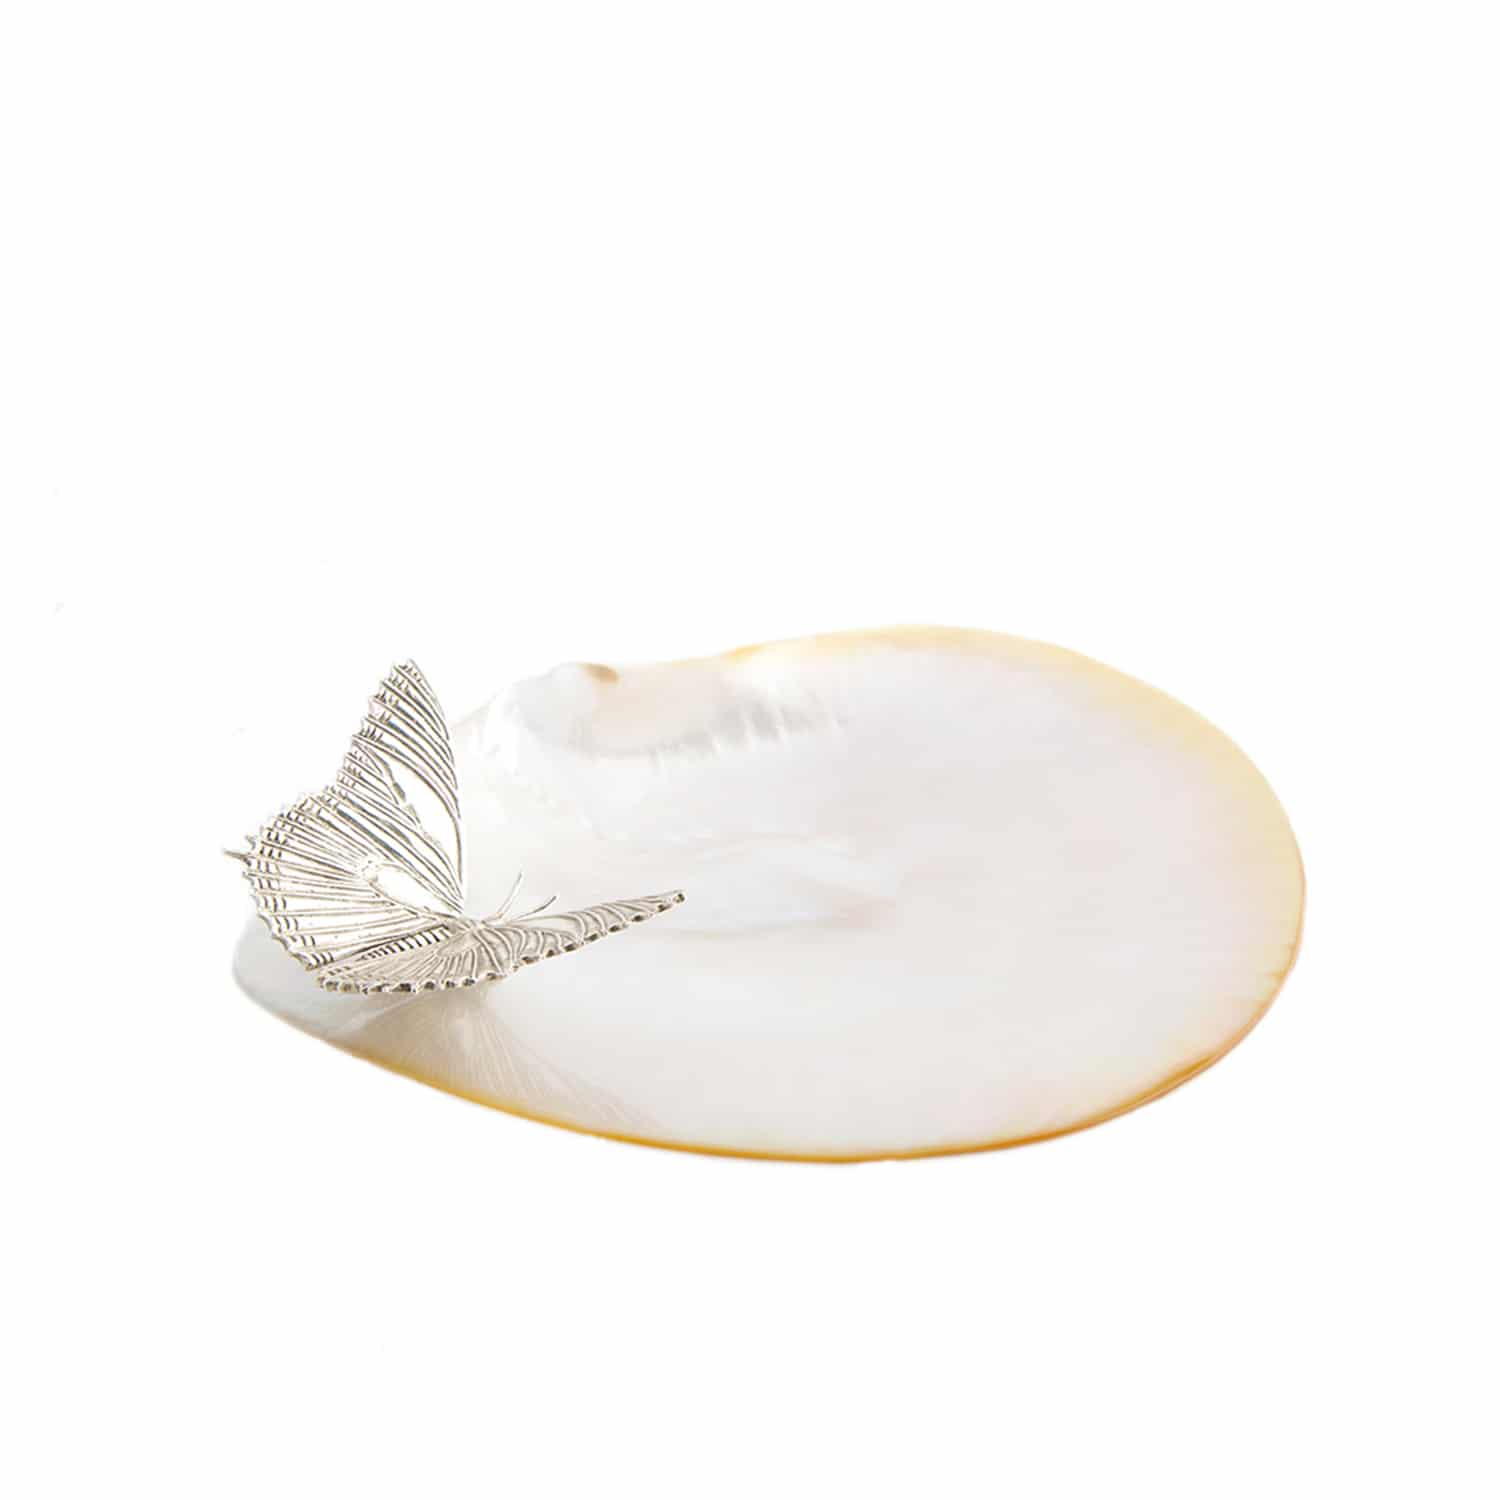 Designer silver and mother of pearl soap dish